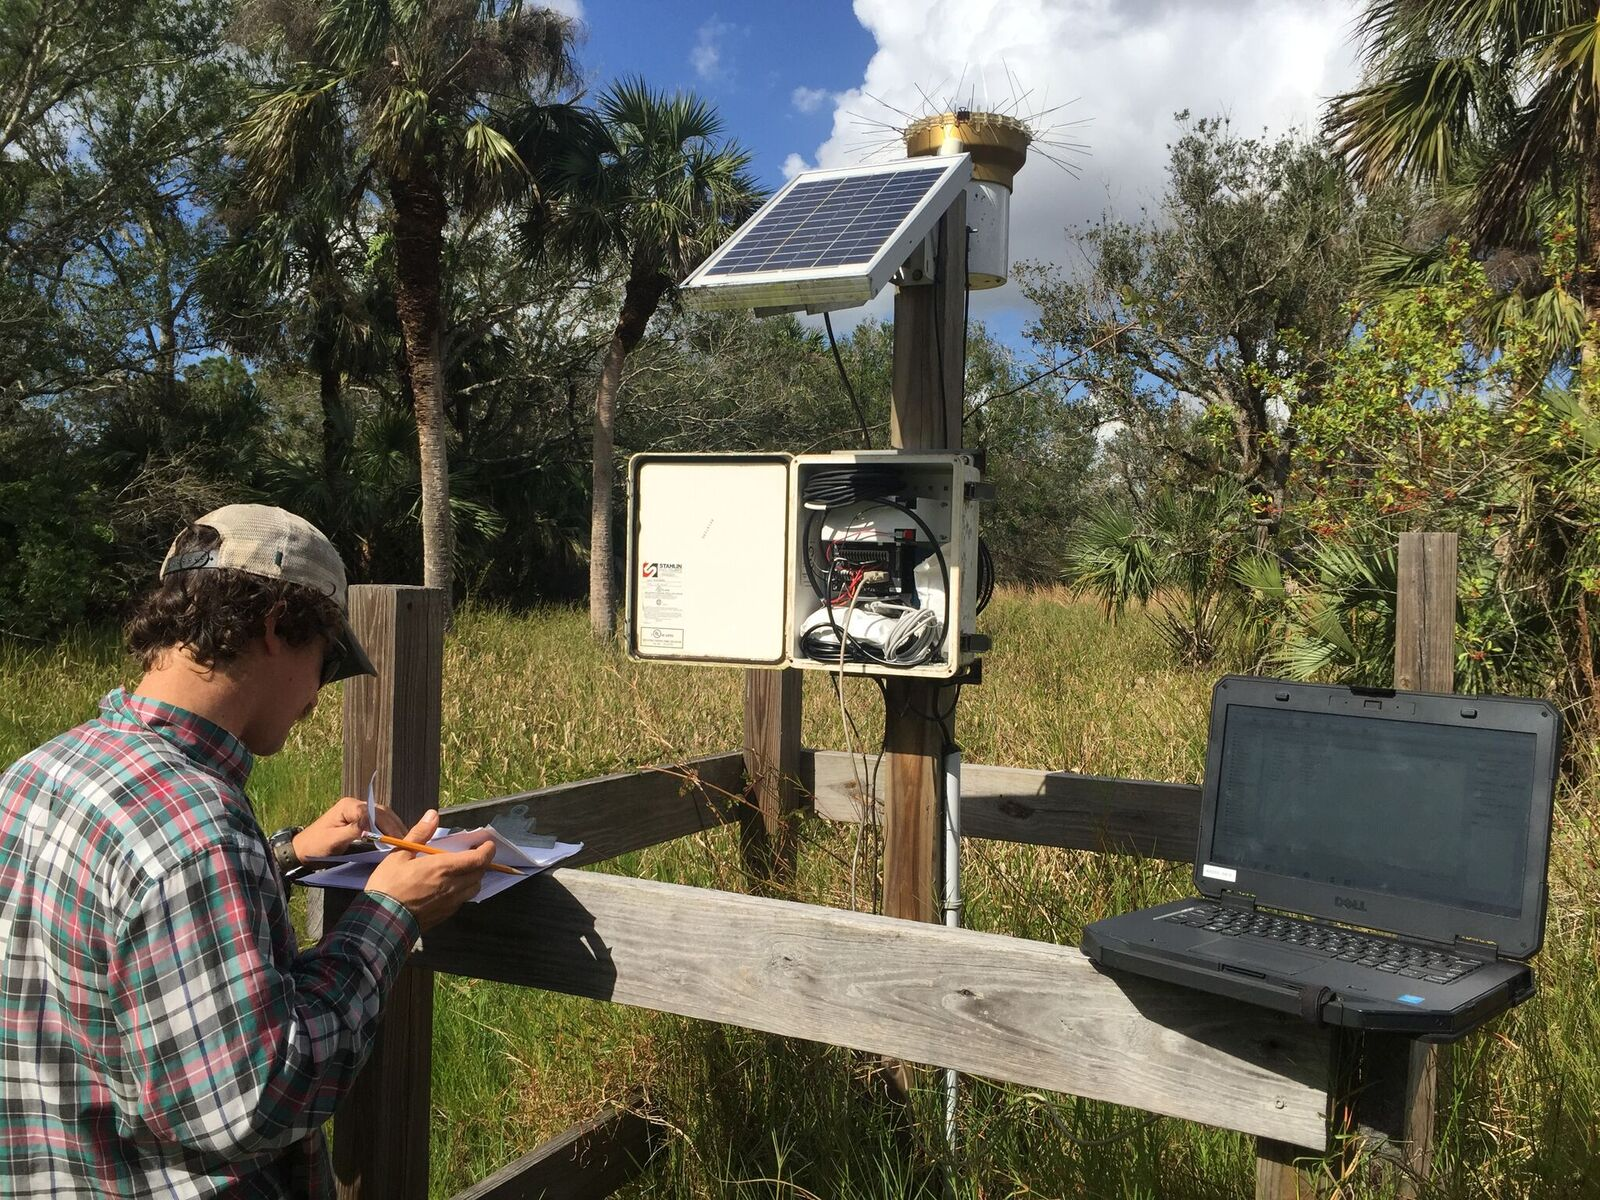 Field Researchers at water level monitoring station